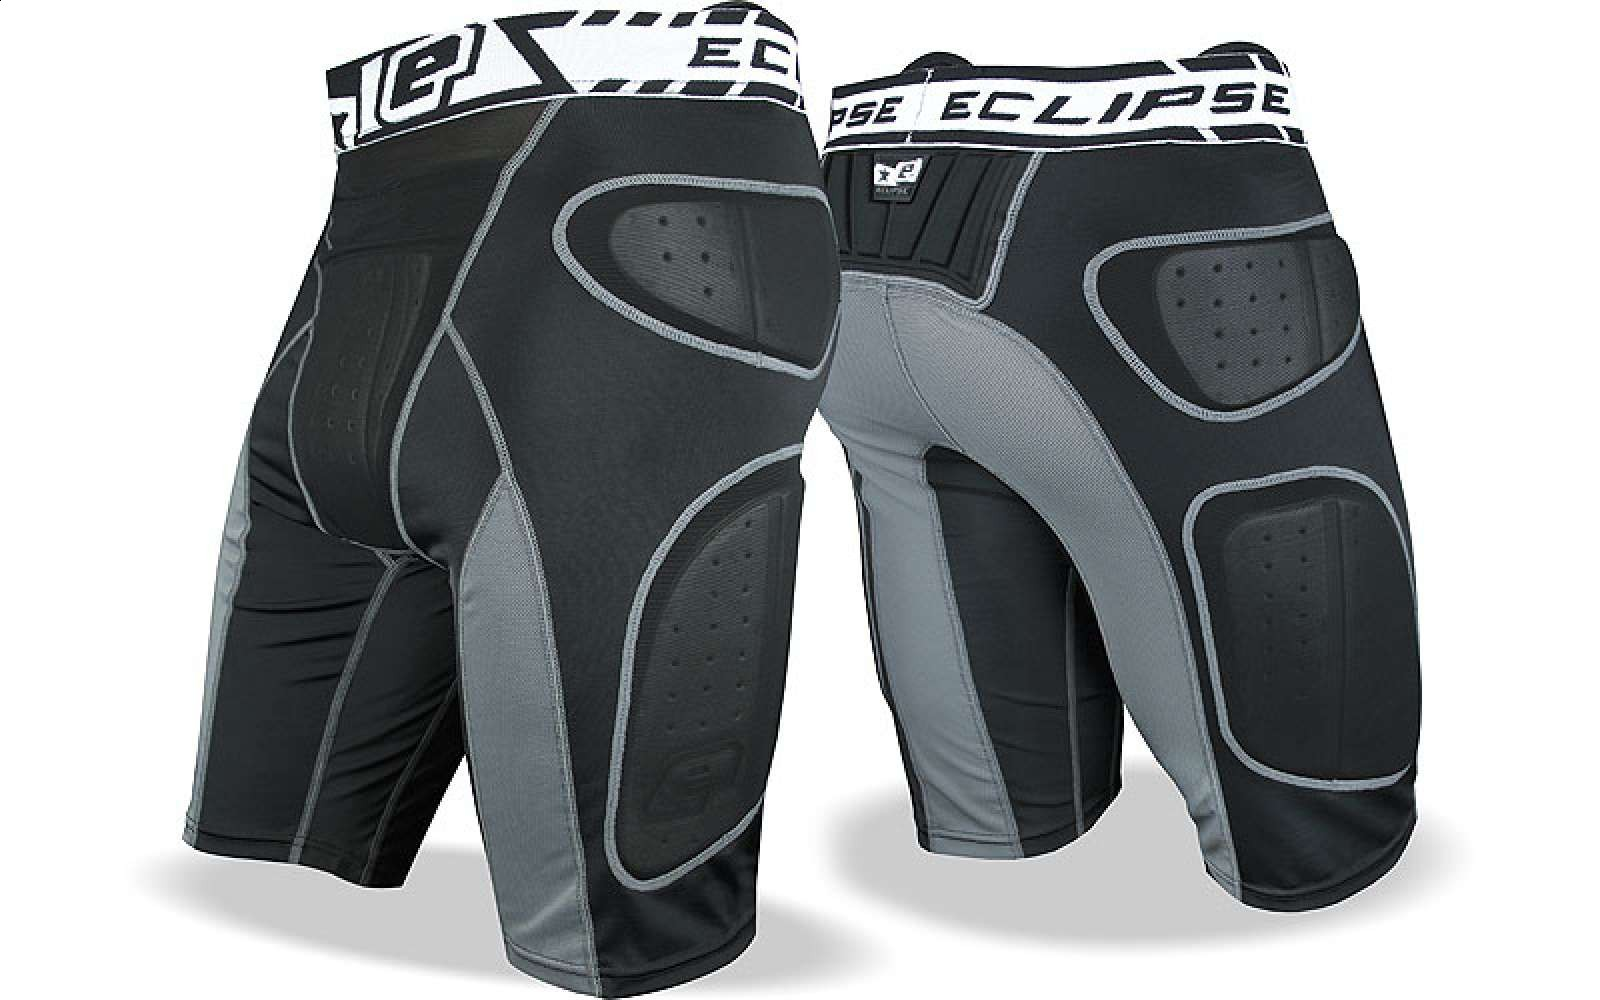 Eclipse Slide Shorts Gen. 2